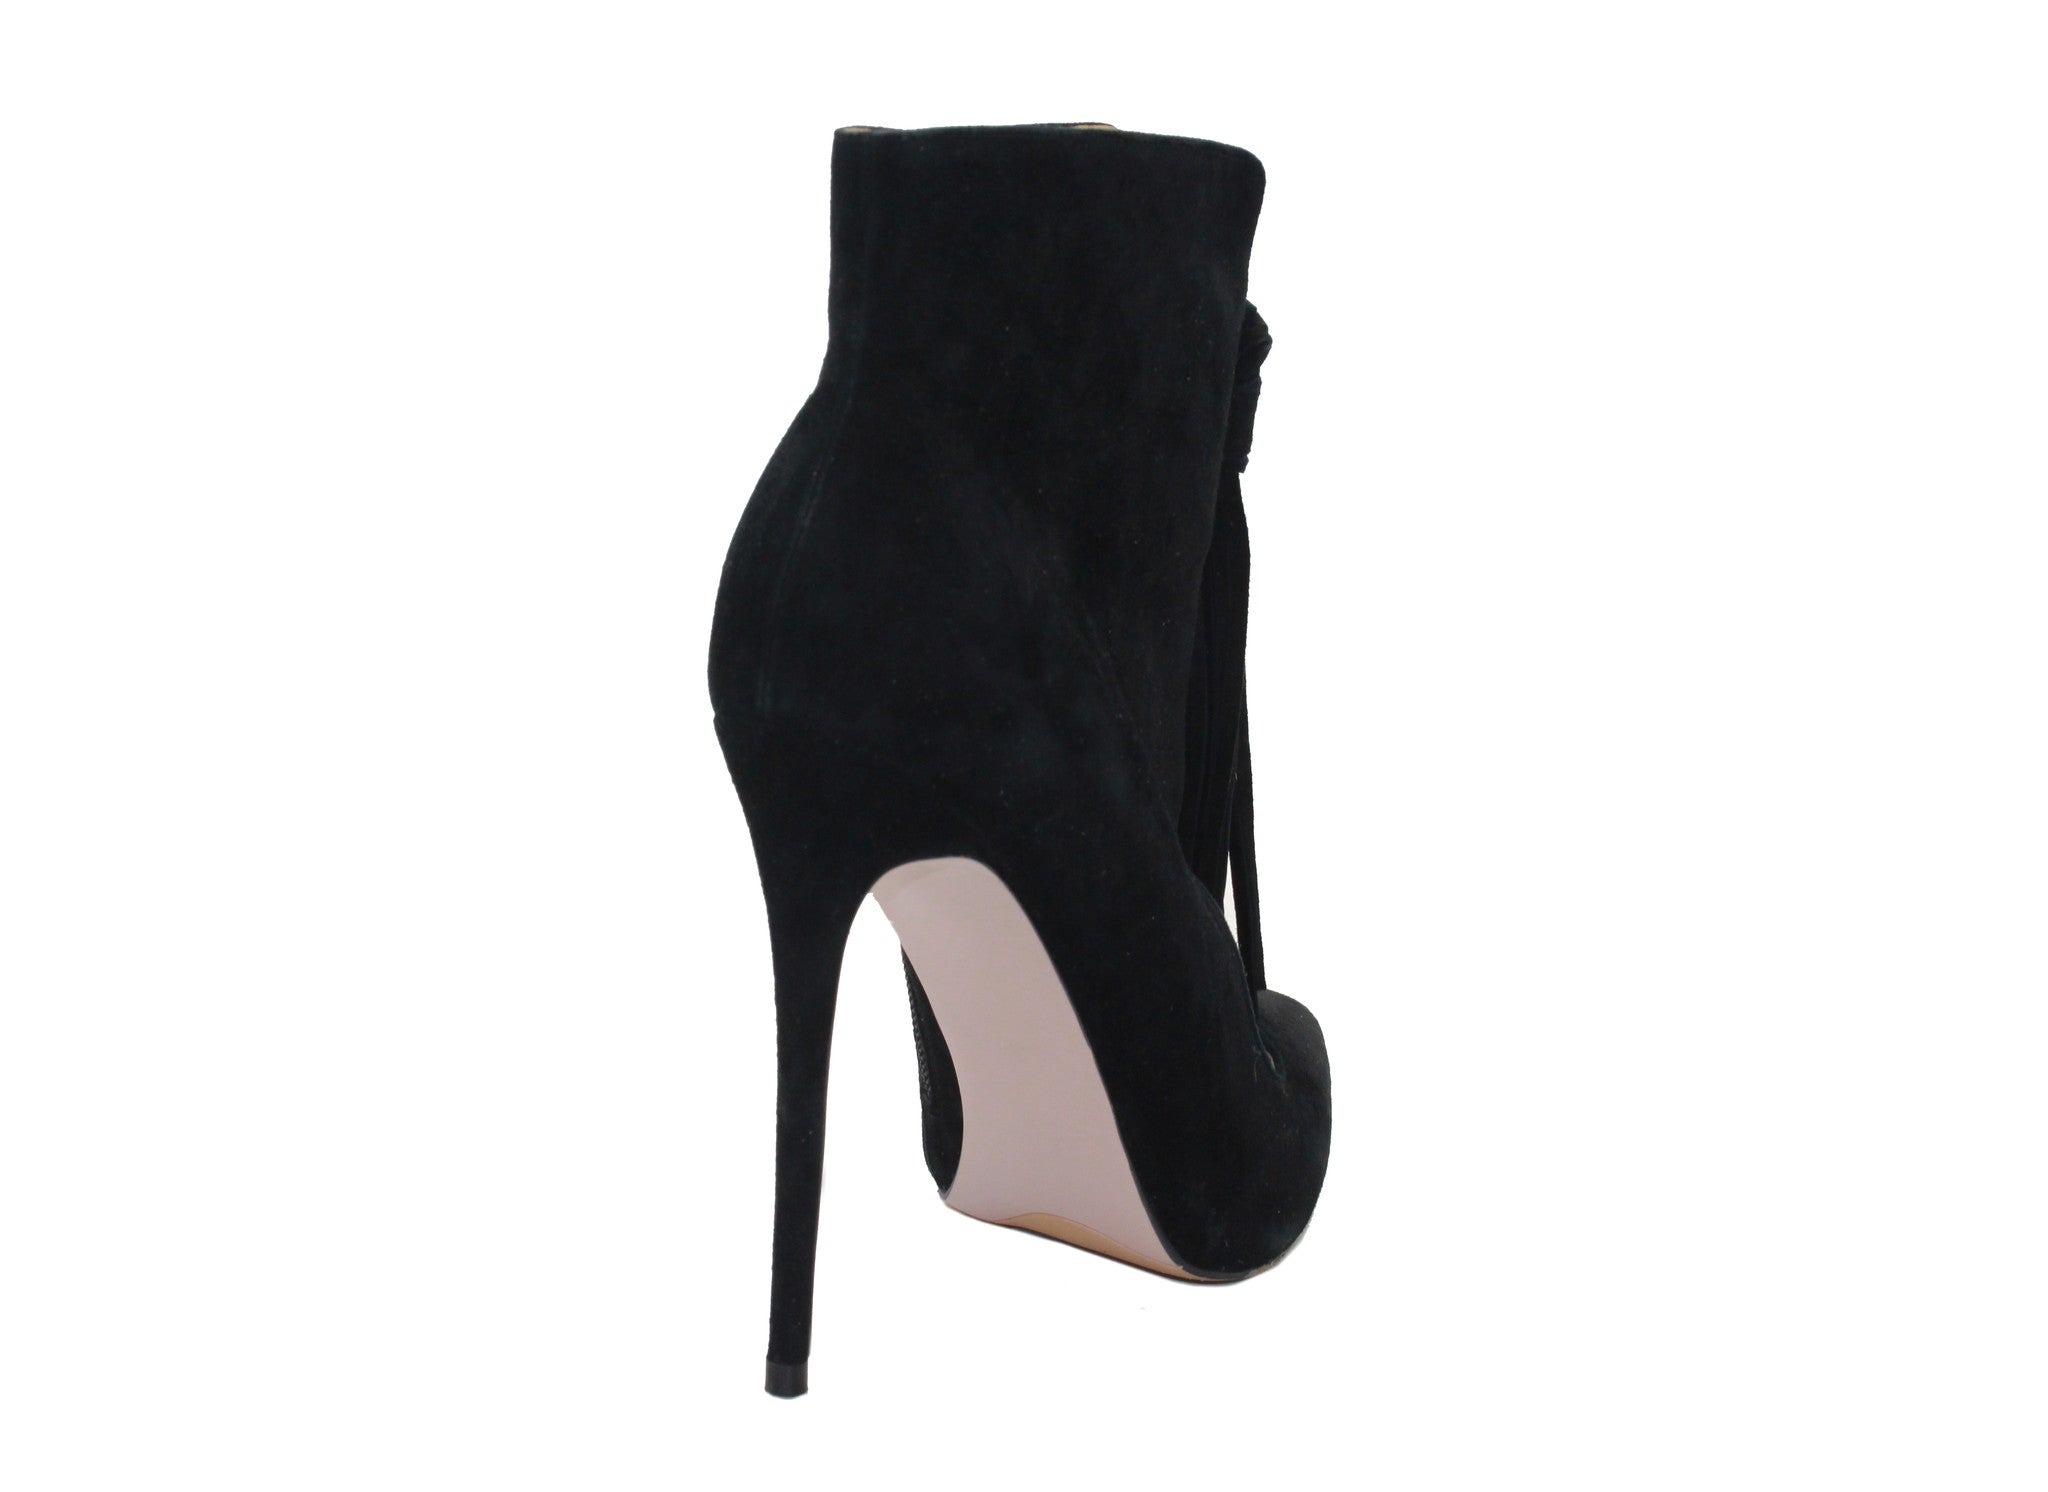 heeled classic comfortable pumps mid dress george most com s women comforter ip black pump walmart shoe